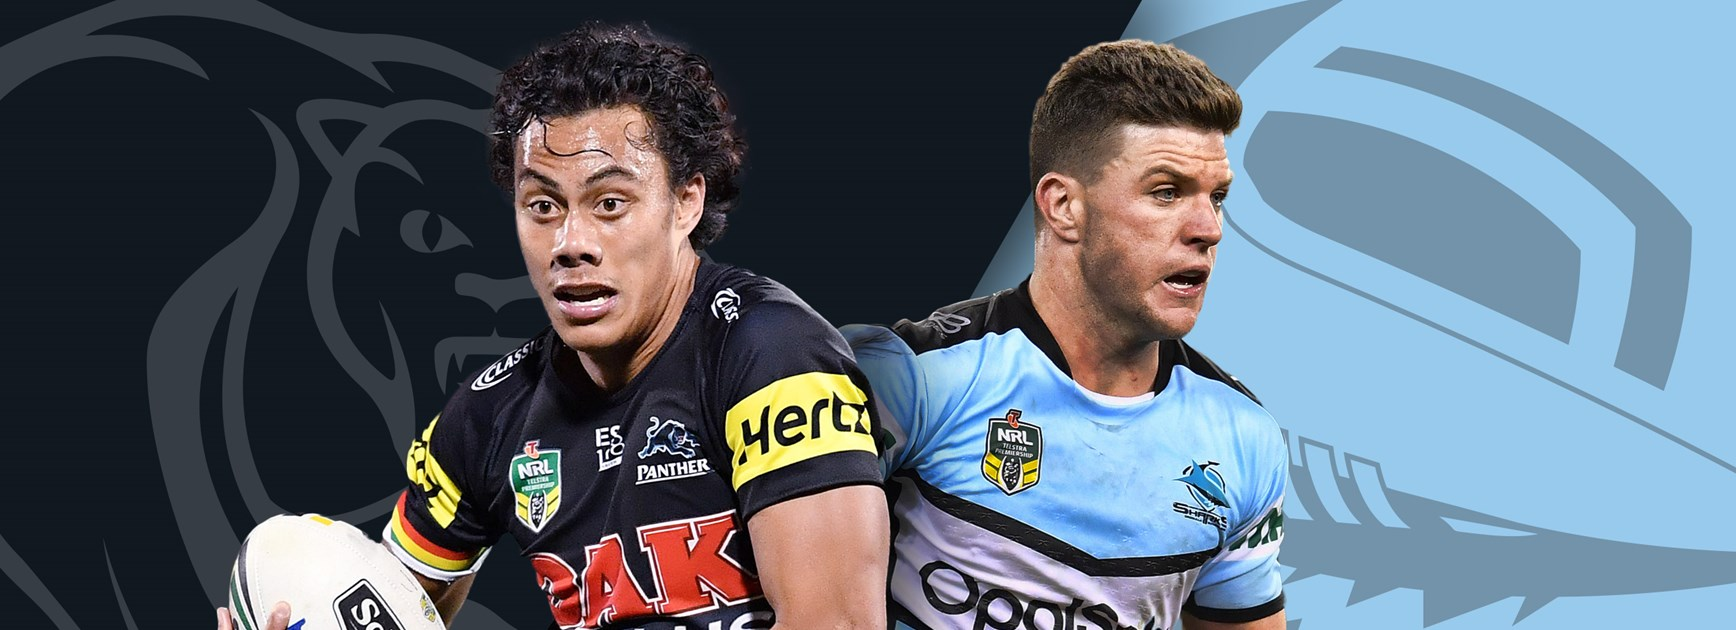 Panthers v Sharks: Late change for Sharks; Panthers 1-17